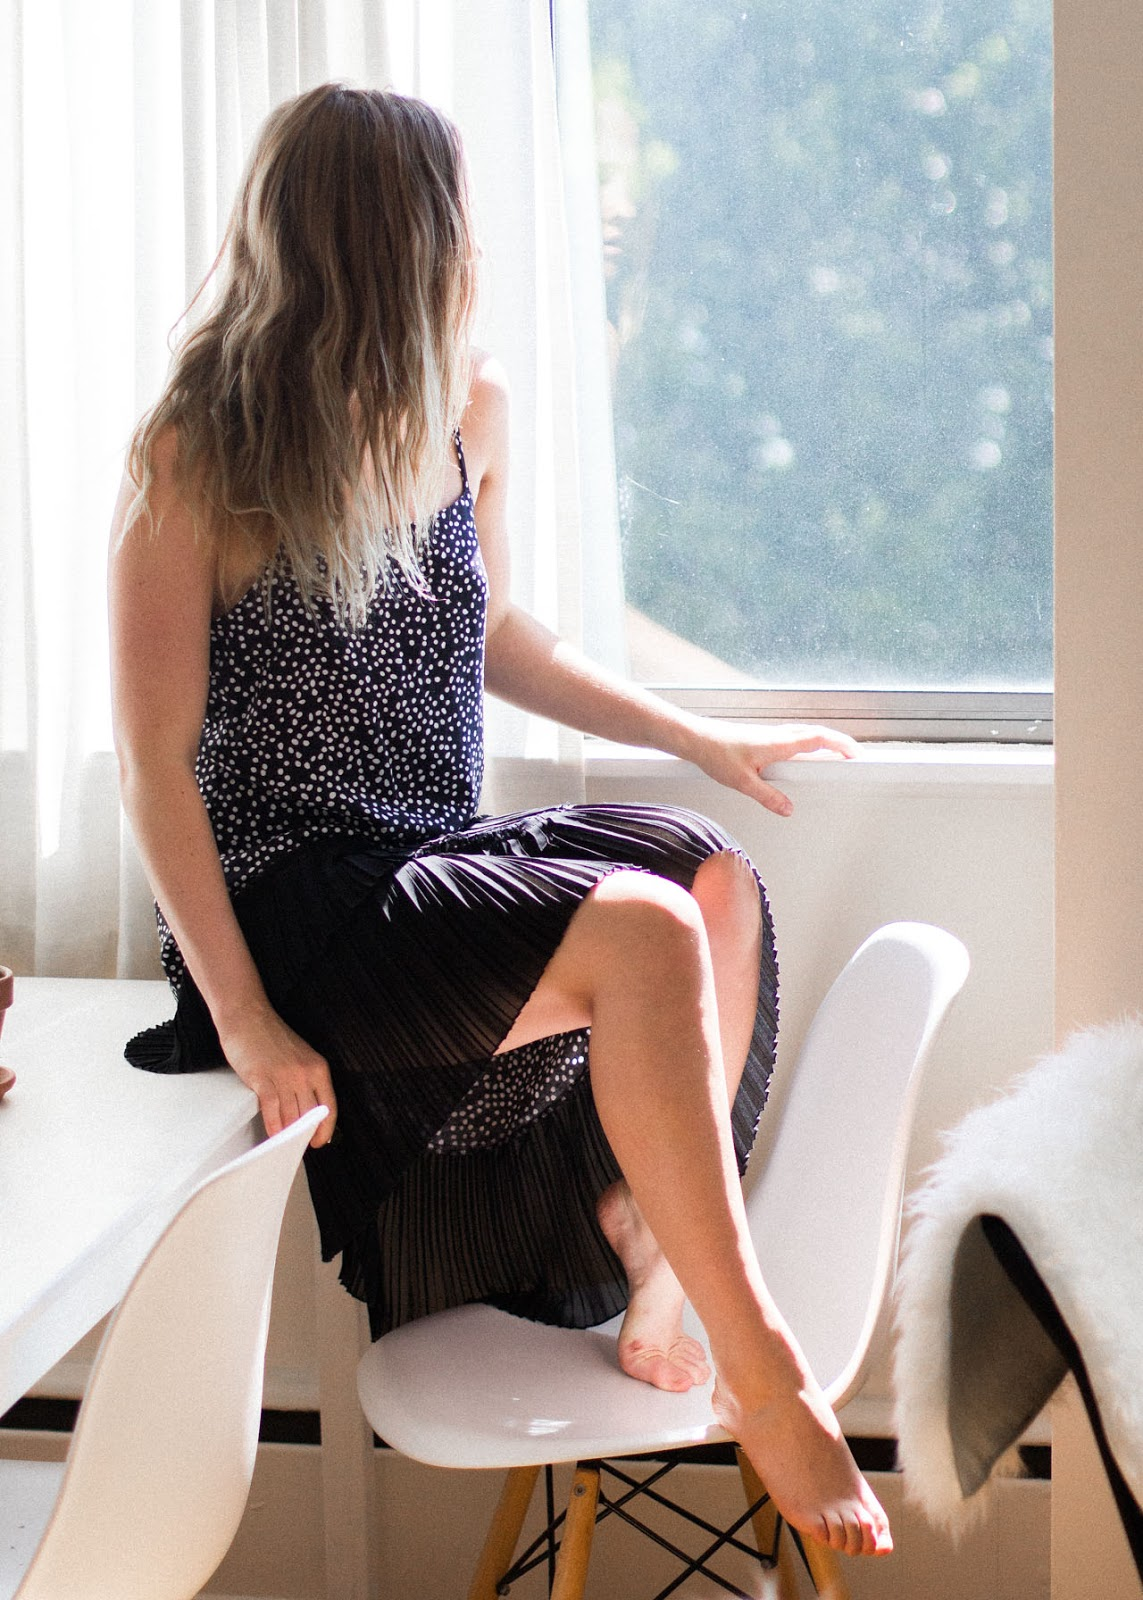 polka dot dress - sale item at H&M - In My Dreams - Vancouver Fashion Blogger